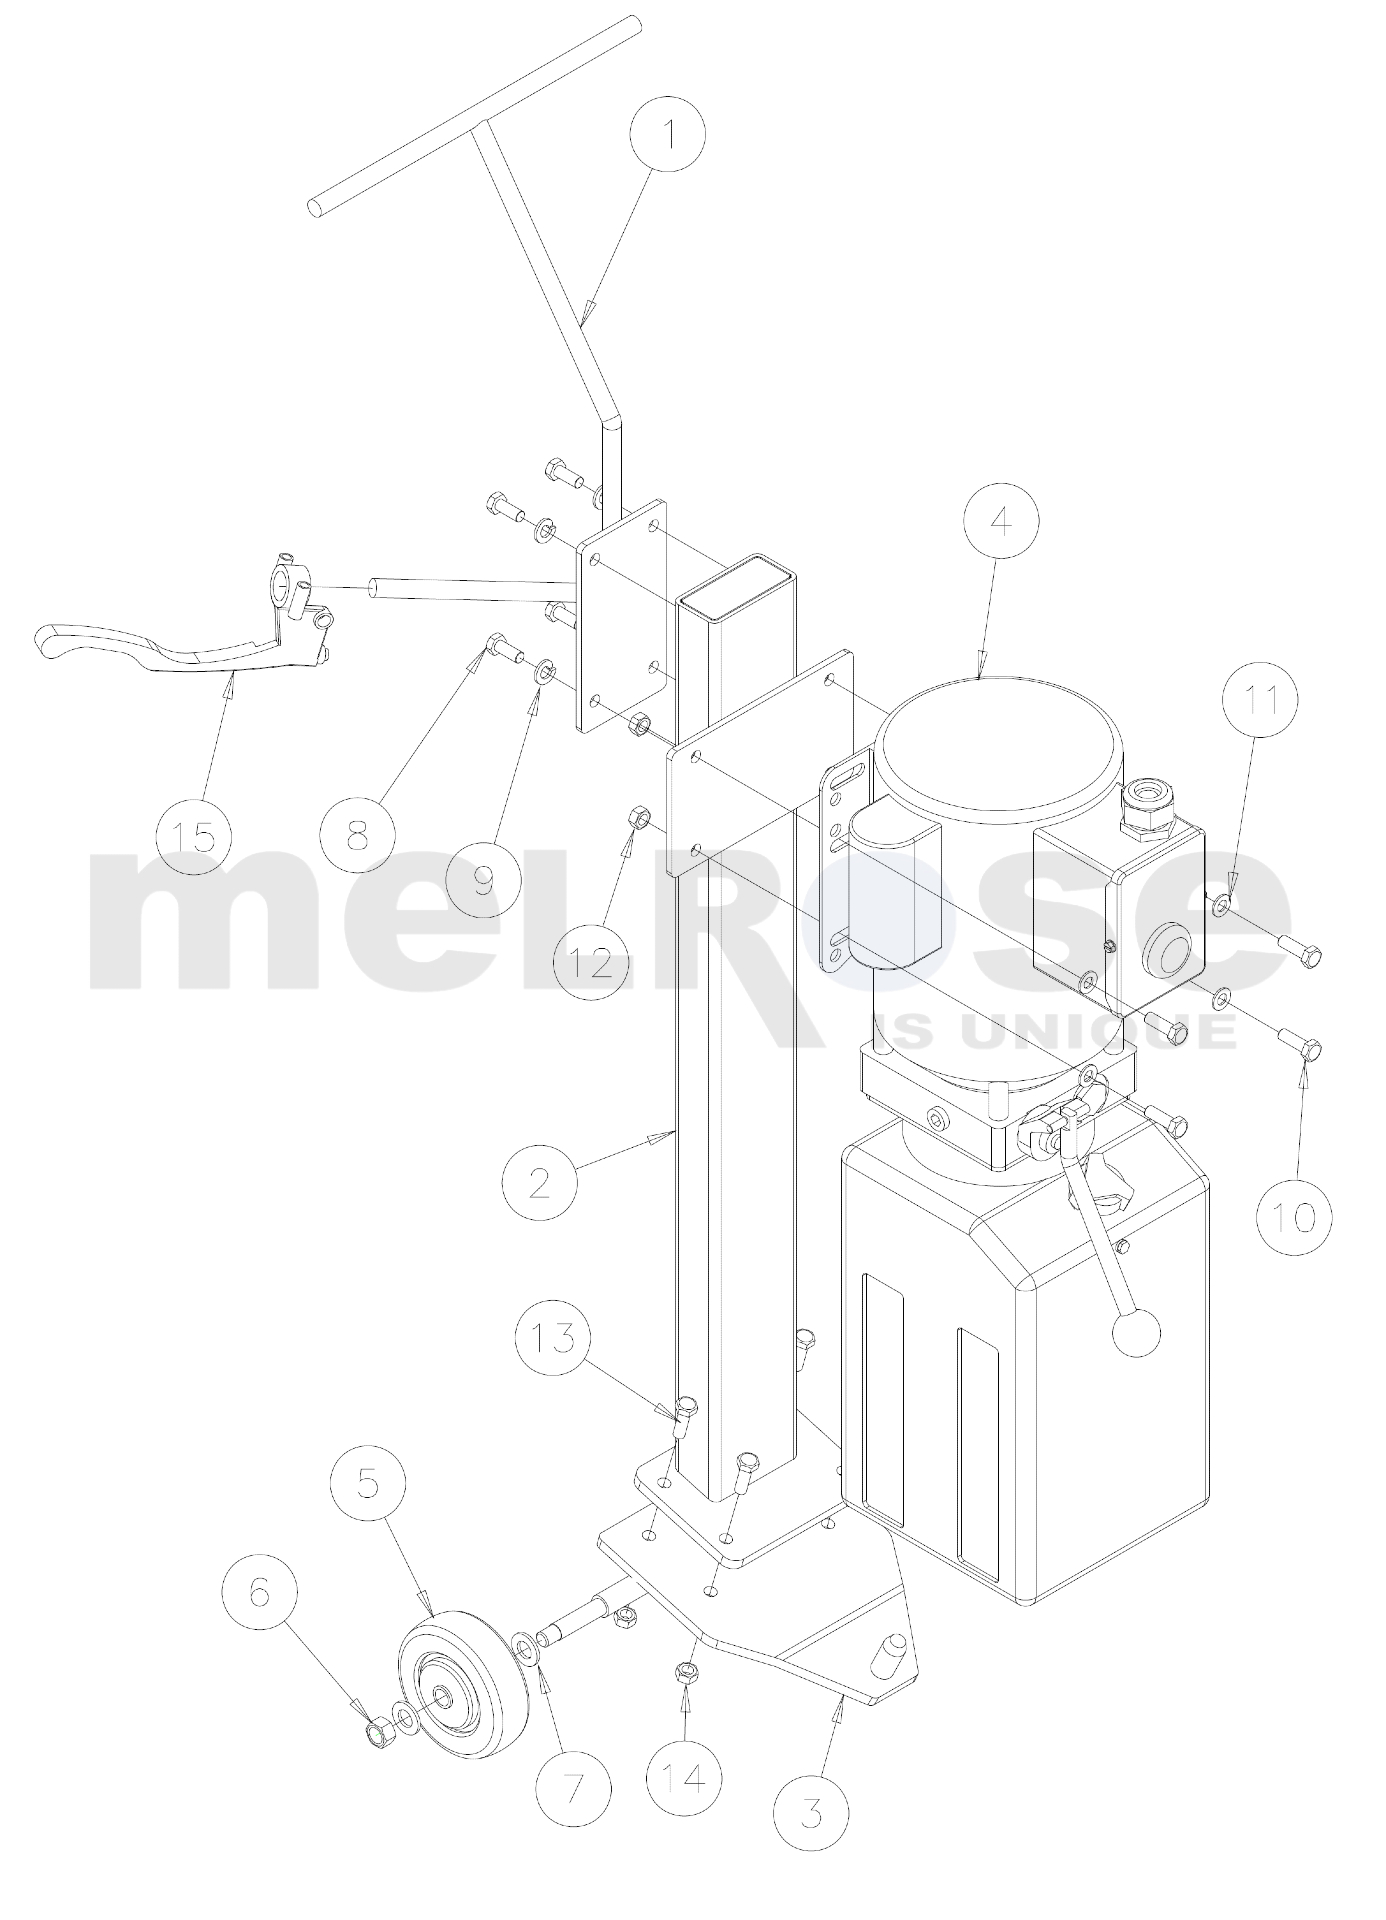 mr6-power-unit-stand-tow-dolly-diagram-marked.jpg